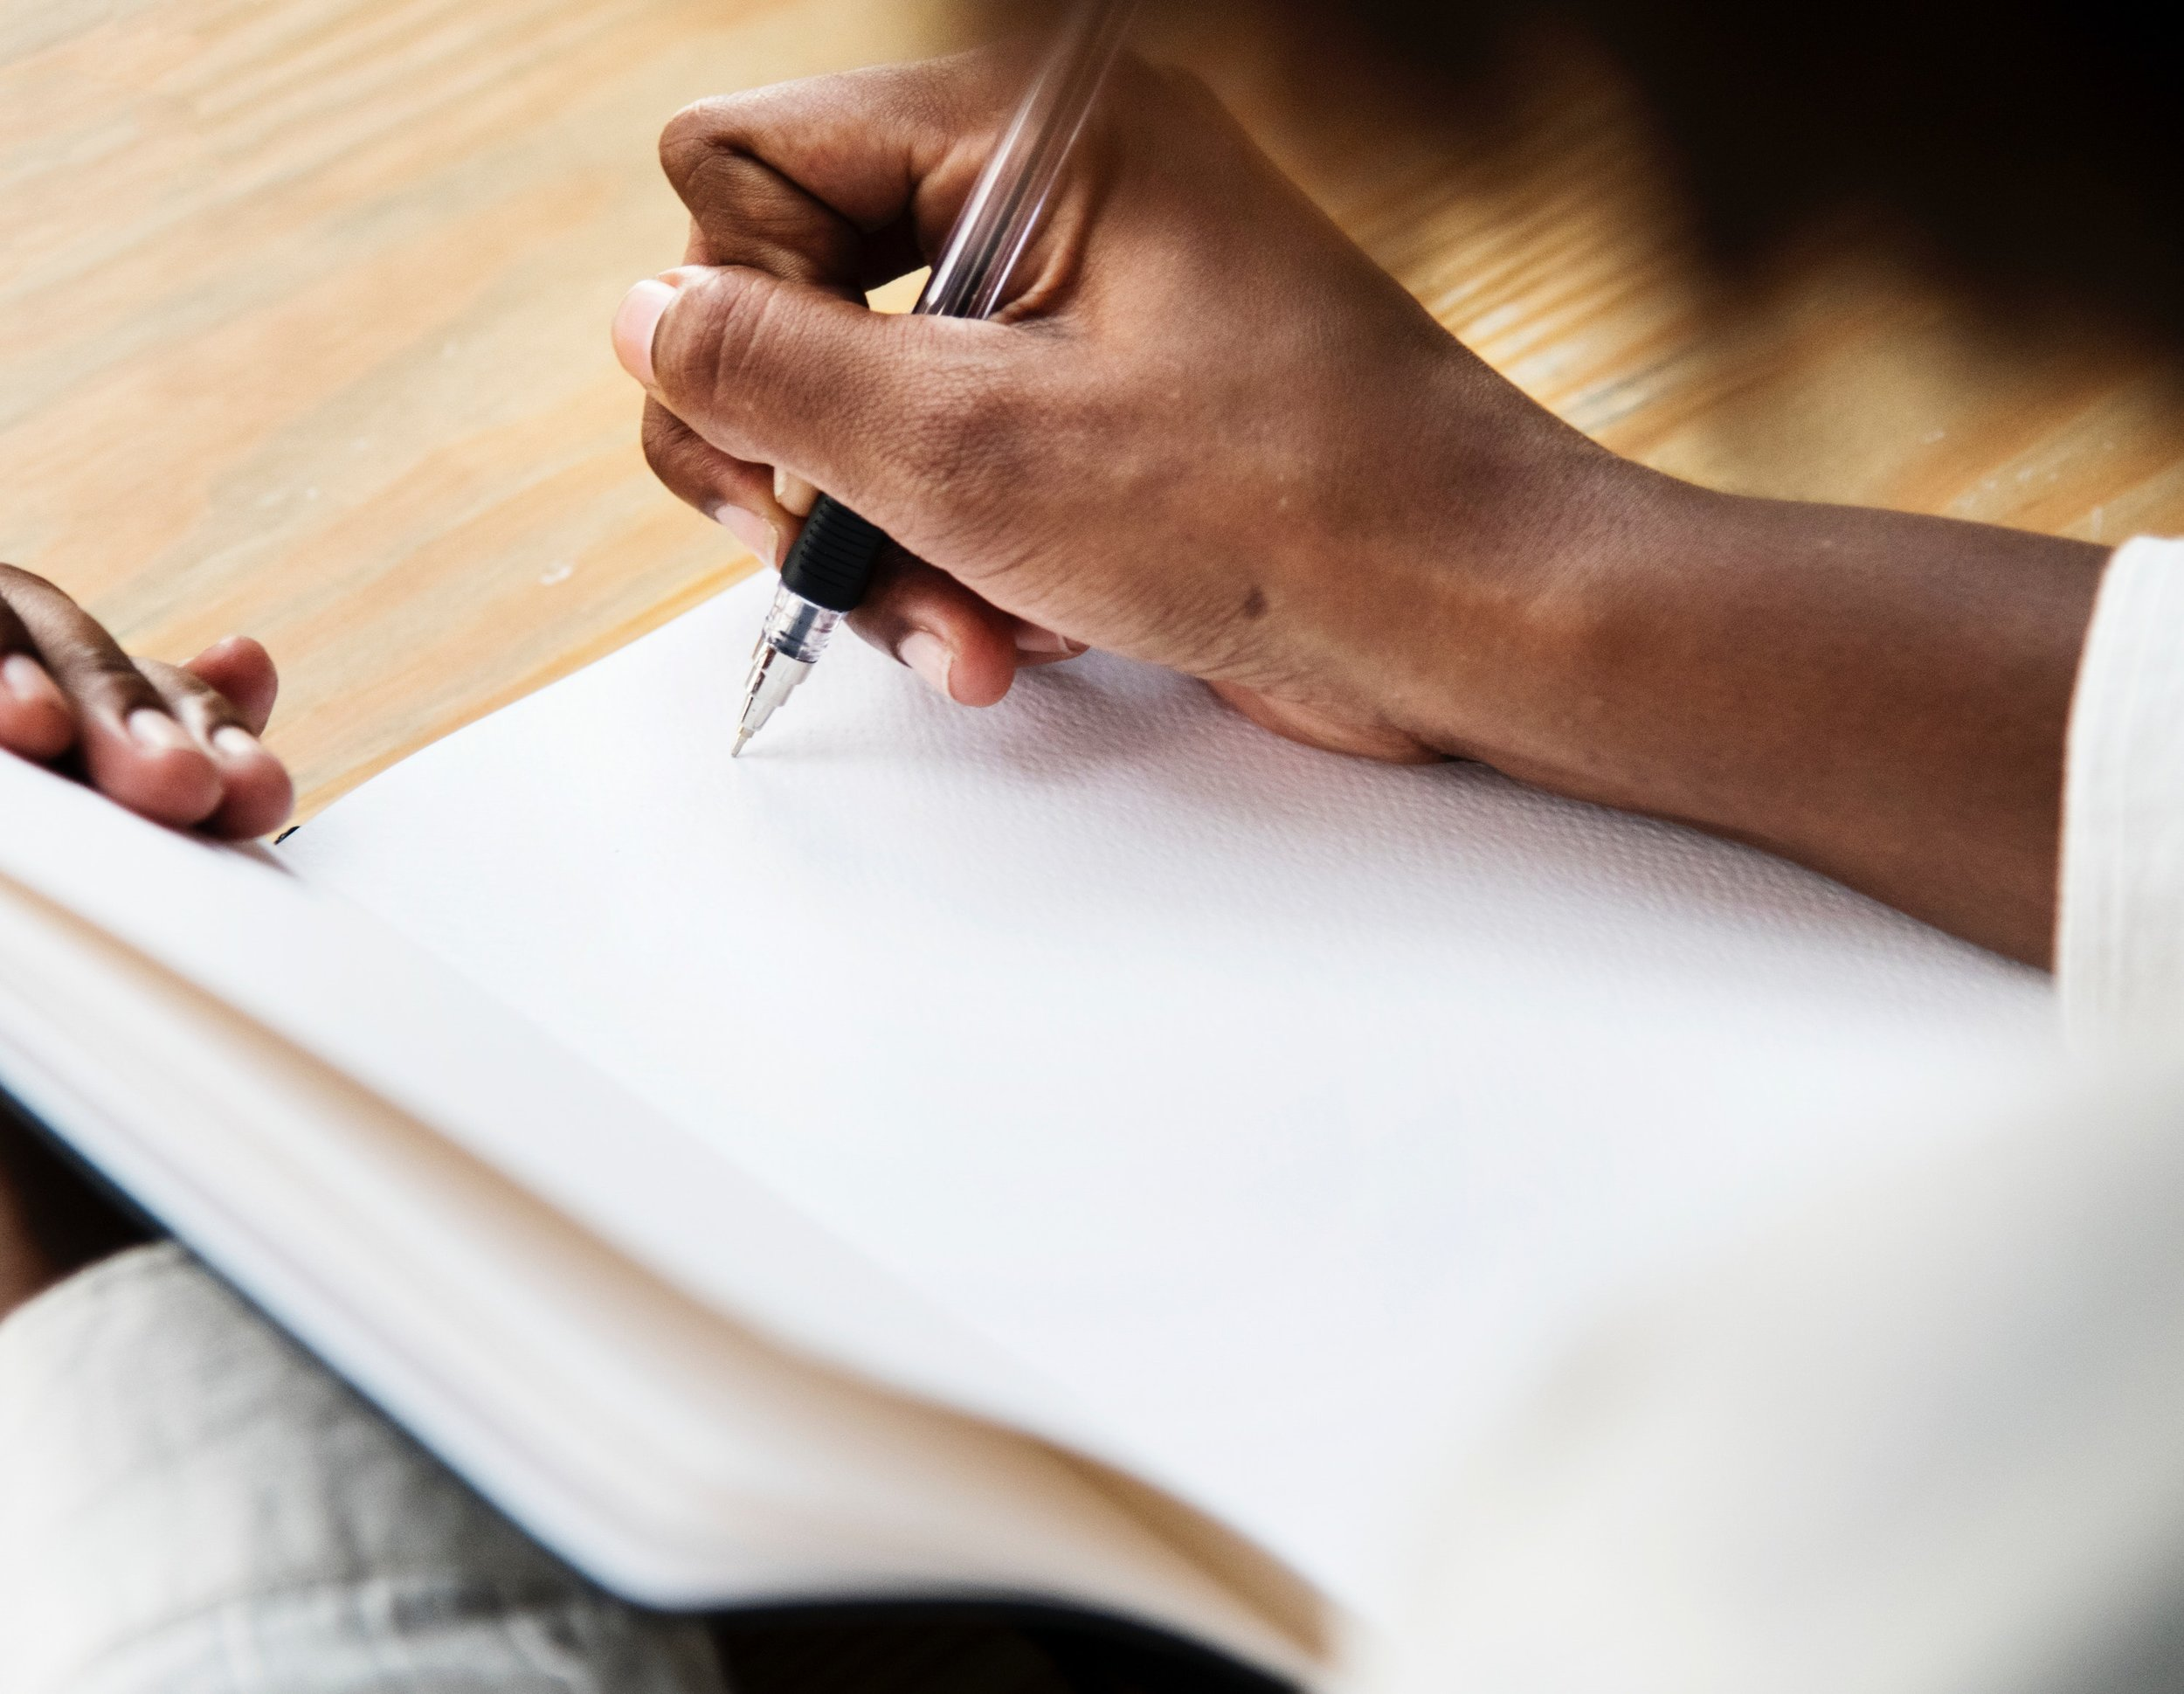 Photo by   rawpixel.com   from   Pexels     (Image Description:     Zoom up of a dark skinned person holding a notebook, hovering pen over a blank page}